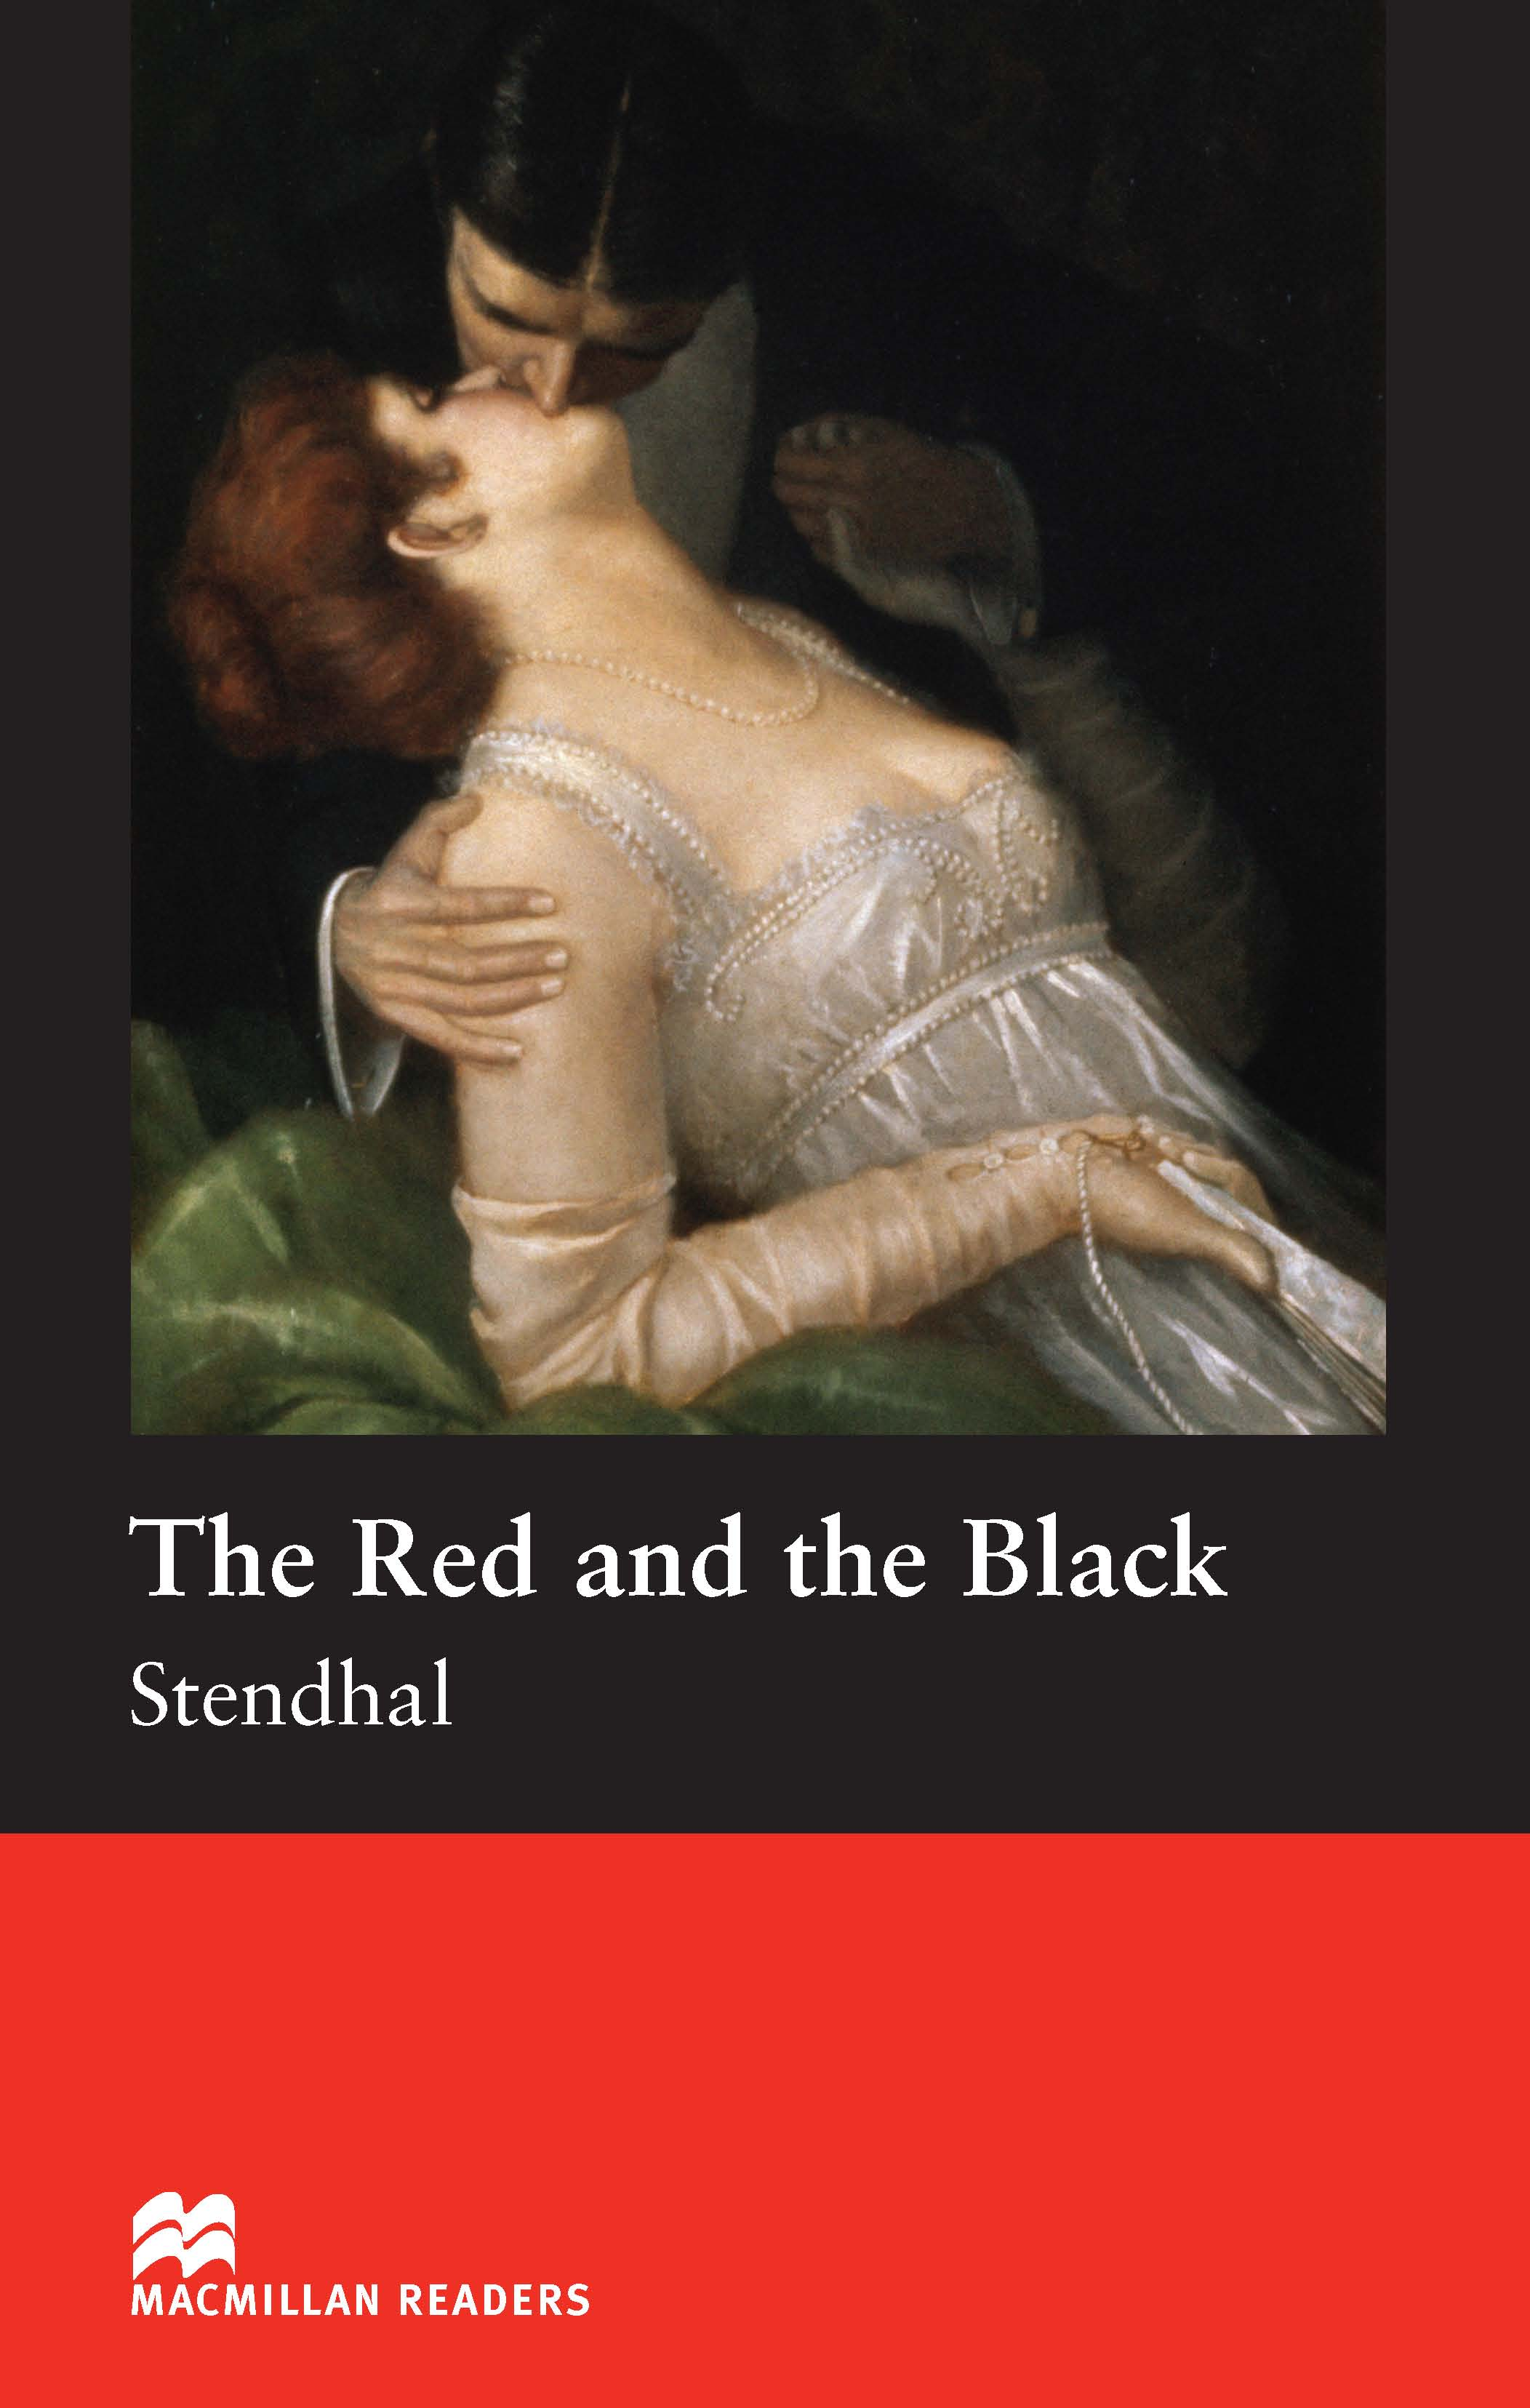 Macmillan Readers: The Red and the Black